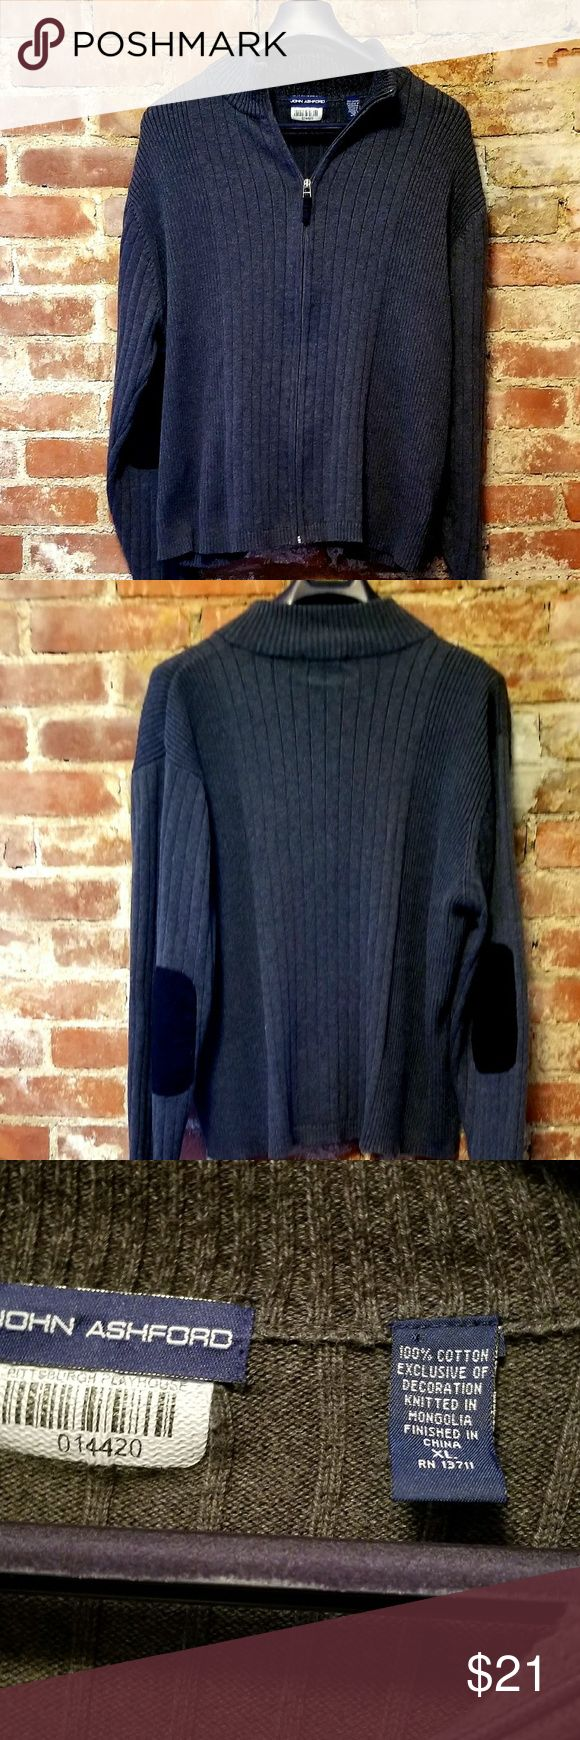 John Ashford grey zip up sweater. Dark grey  zip up sweater with padded elbows. 100% cotton. Gently used for small local theater. John Ashford Sweaters Zip Up